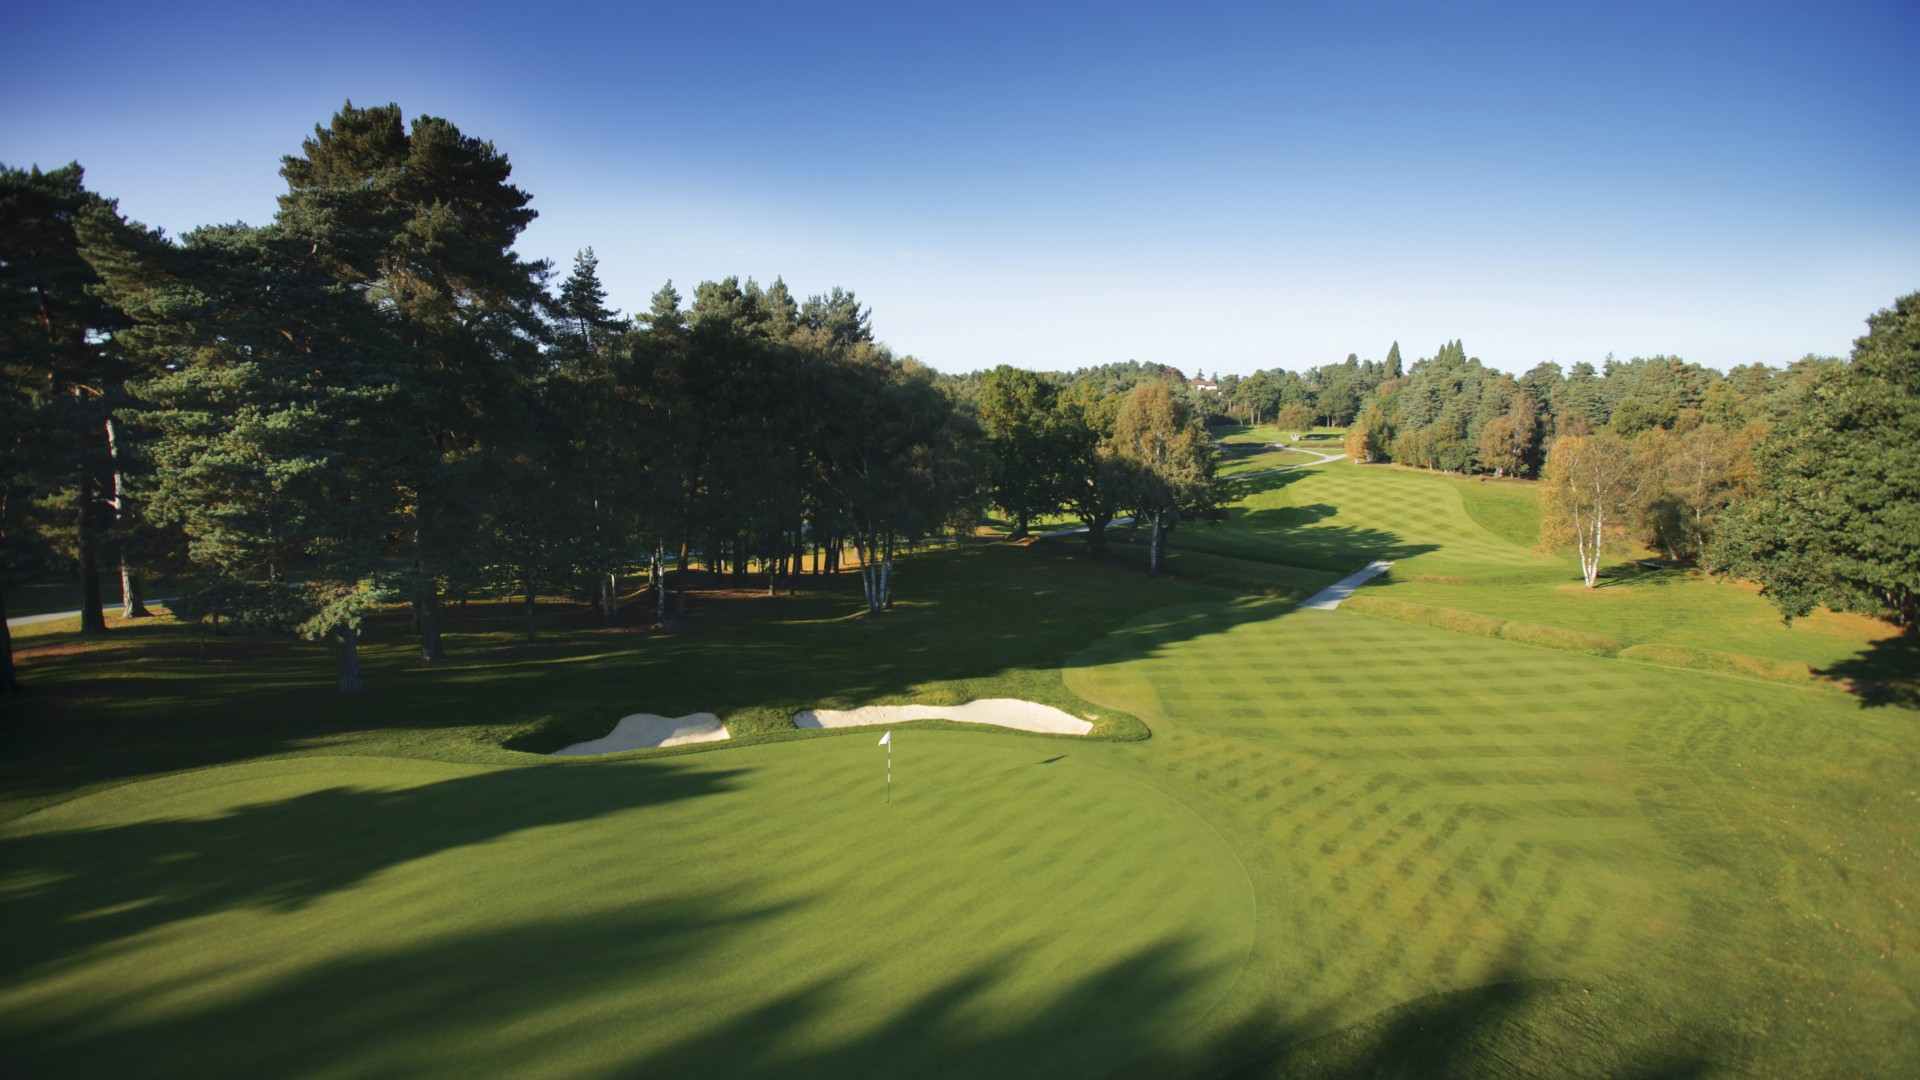 Wentworth, The West course, Surrey, England